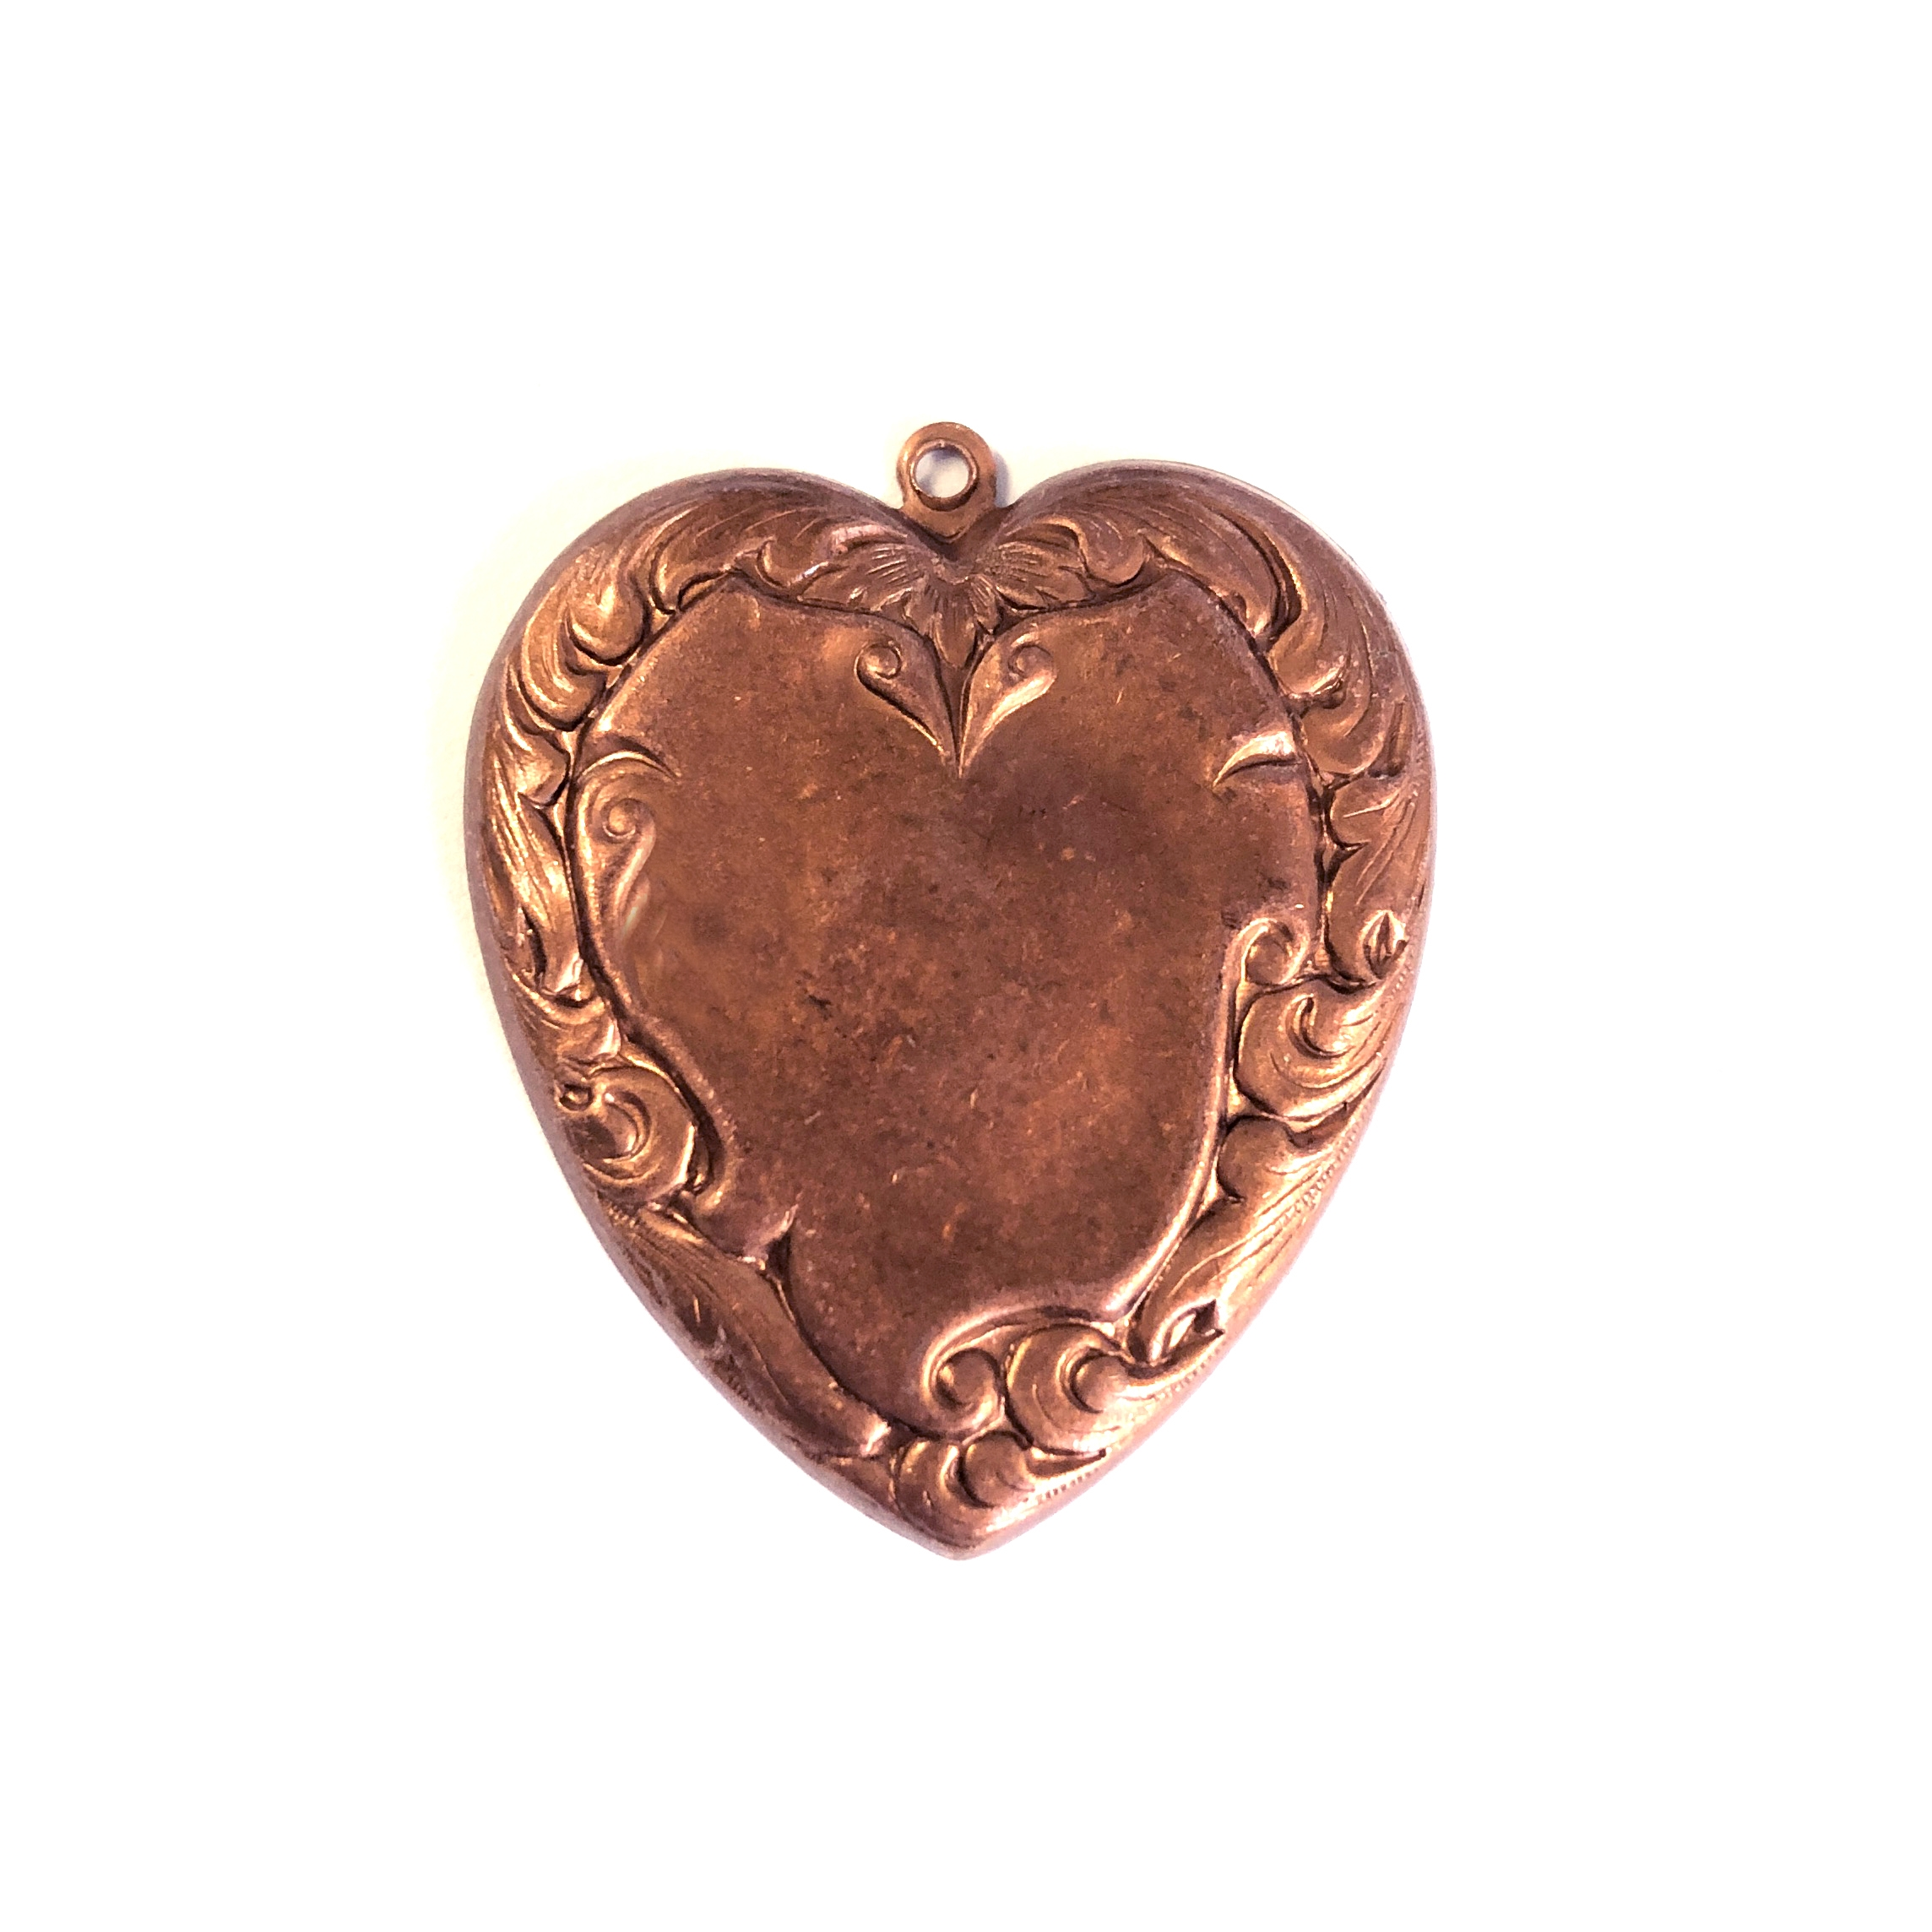 Victorian Heart Pendant, Gingerbread Brass, 0172, antique copper, jewelry making supplies, heart base, heart jewelry, heart pendants, nickel free jewelry, US made, bsueboutiques, 30 x 26mm